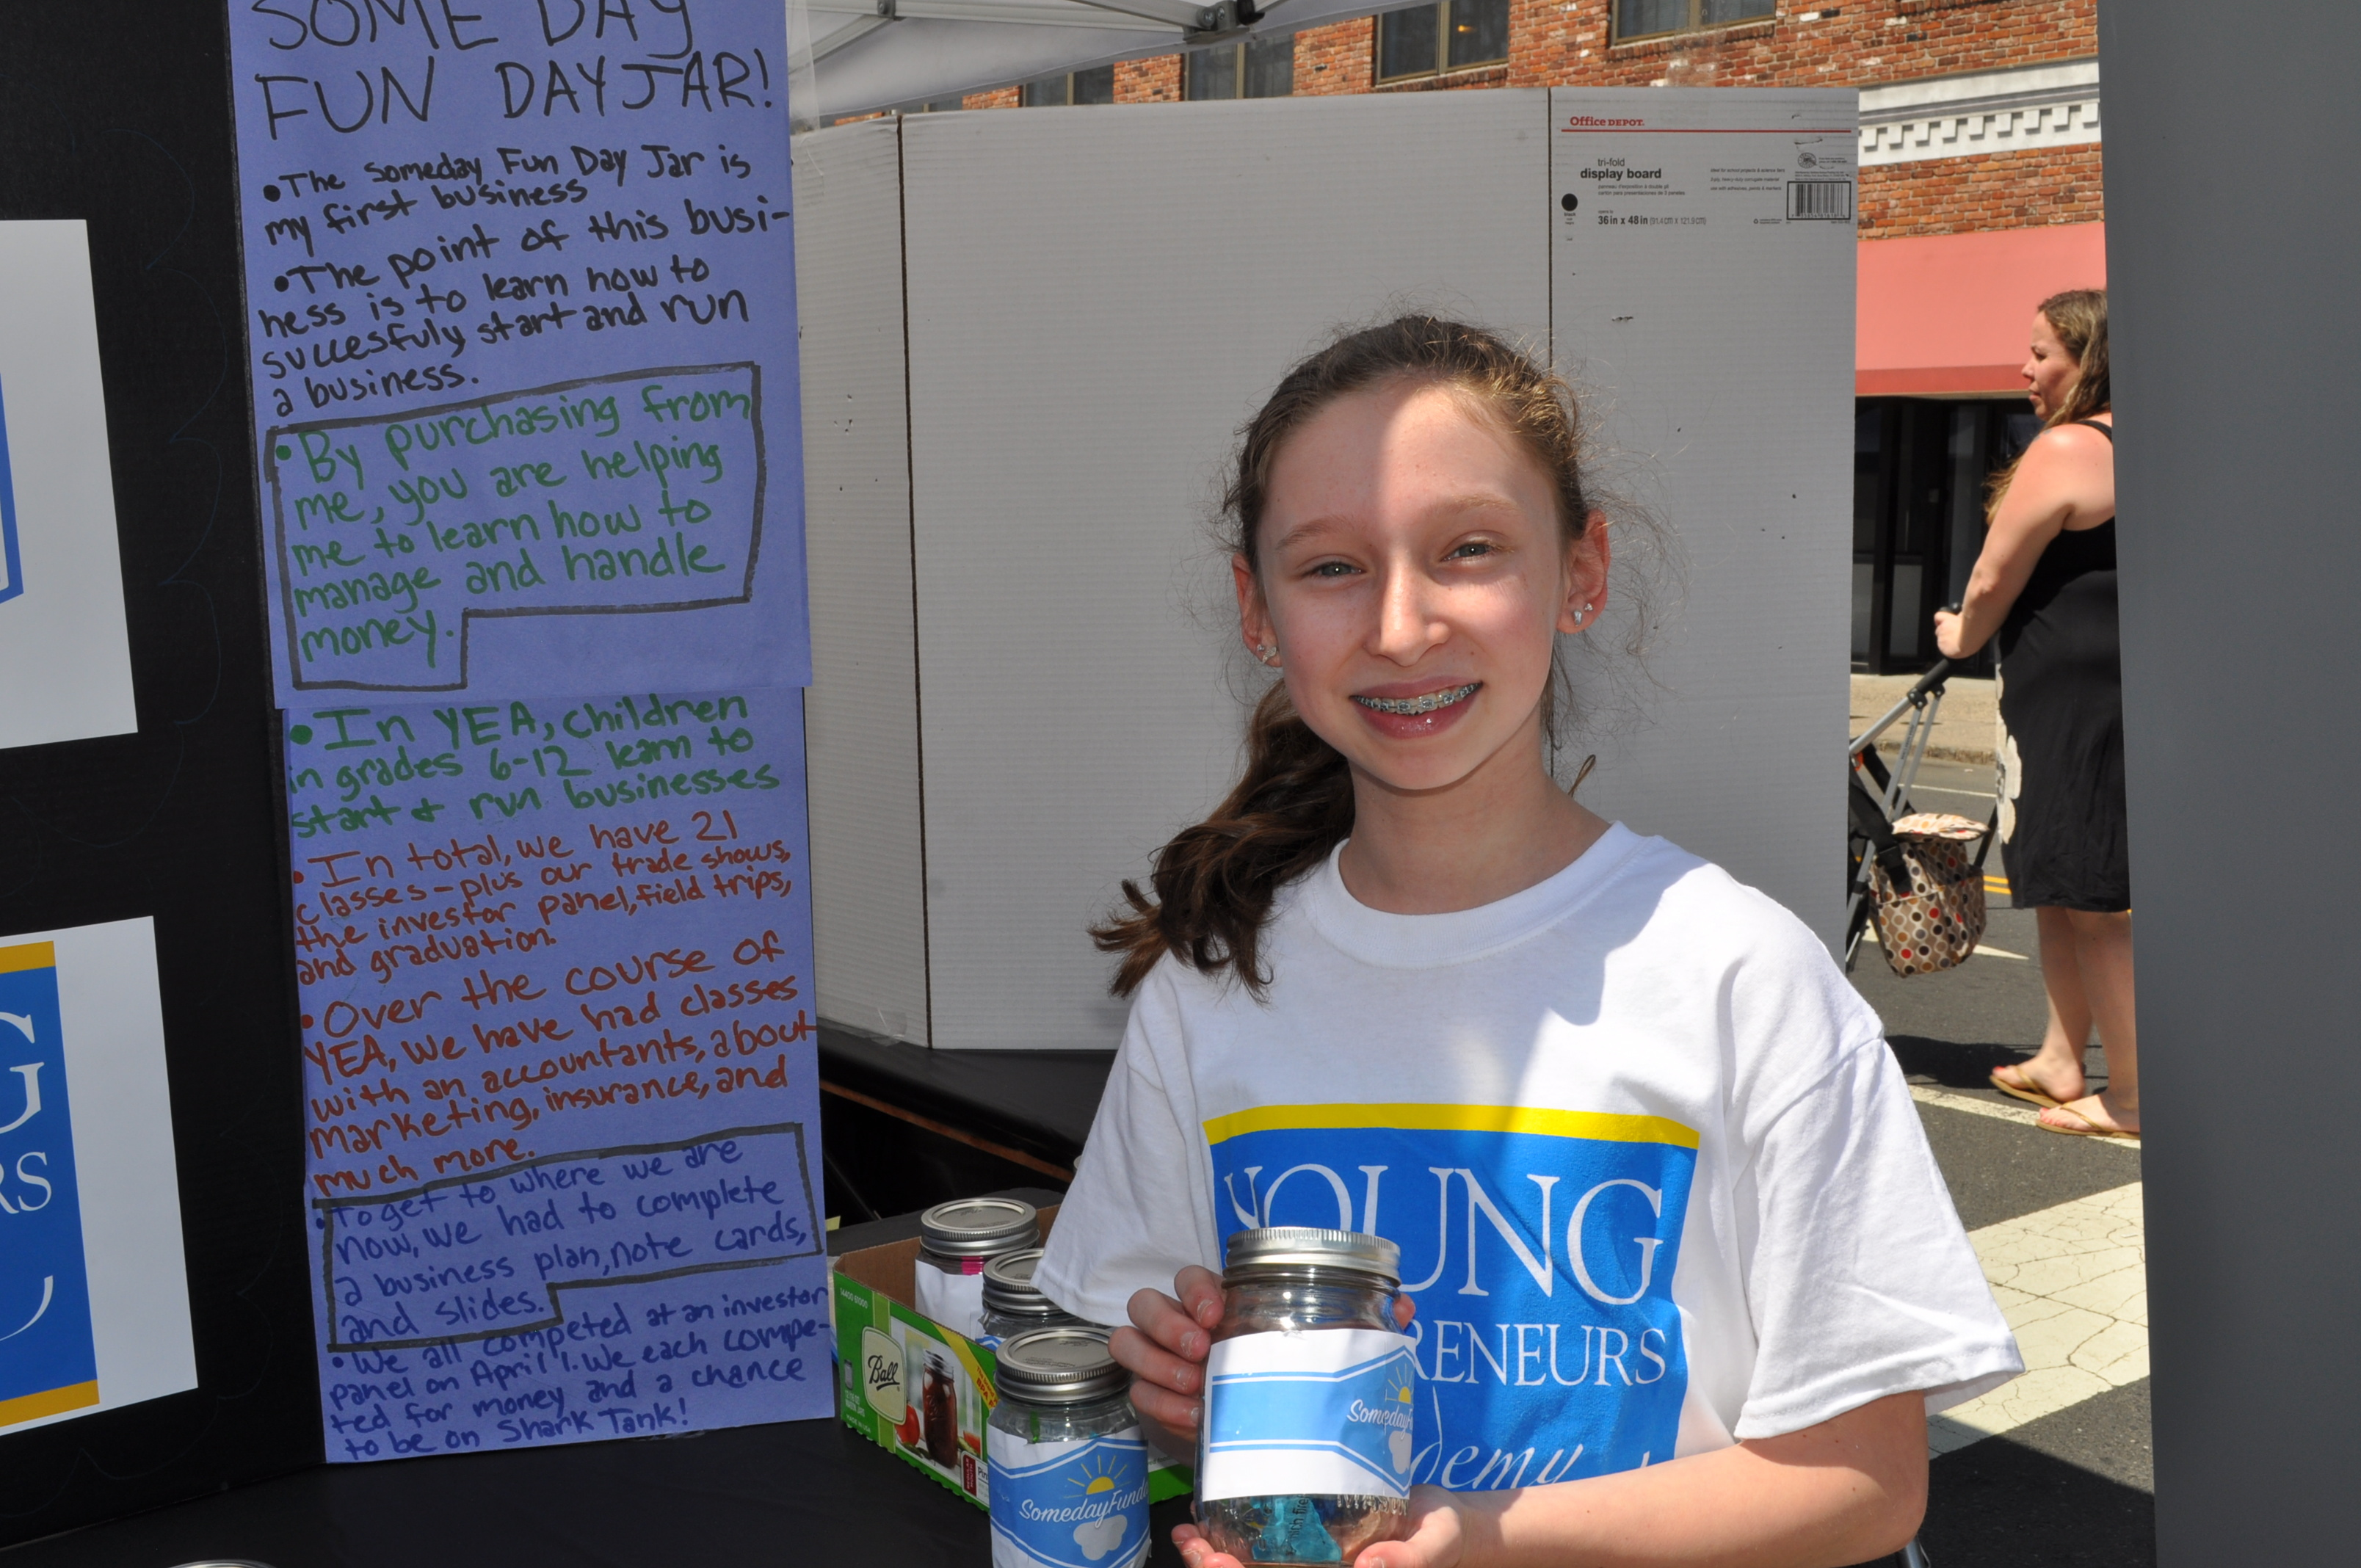 teen entrepreneurs debut businesses at westfield s spring fling teen entrepreneurs debut businesses at westfield s spring fling westfield nj news tapinto